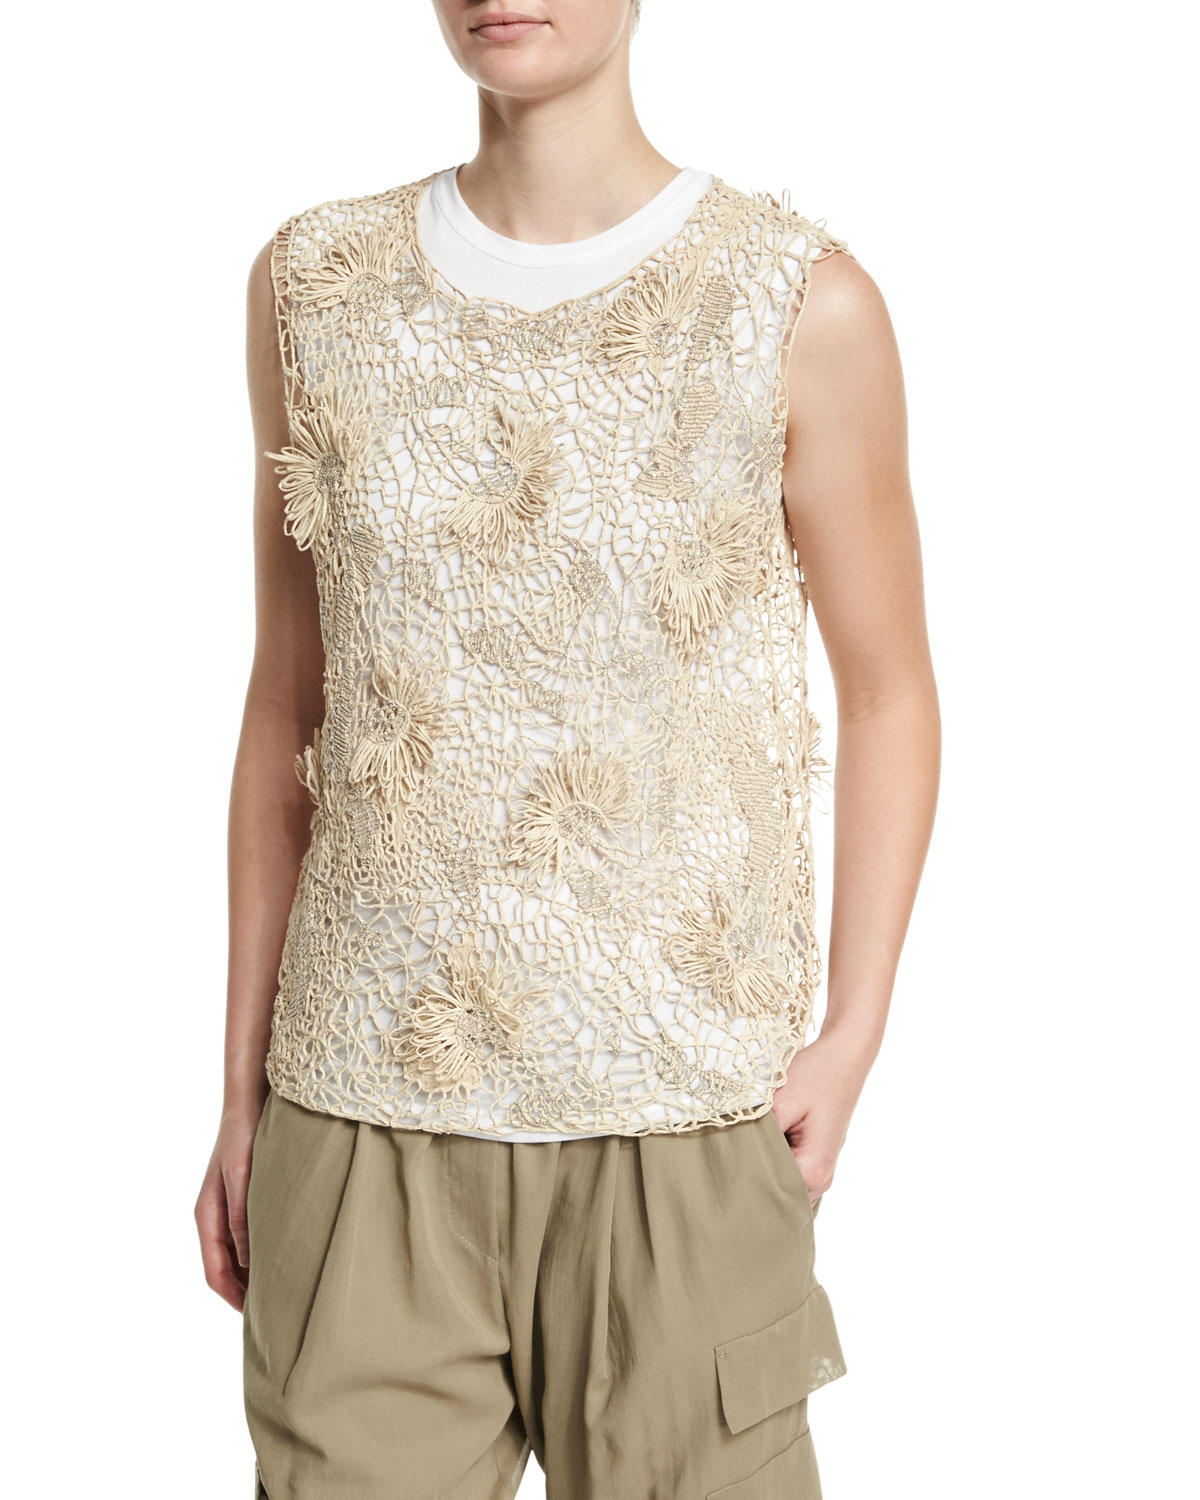 Sleeveless Rubberized Floral Top, Canvas